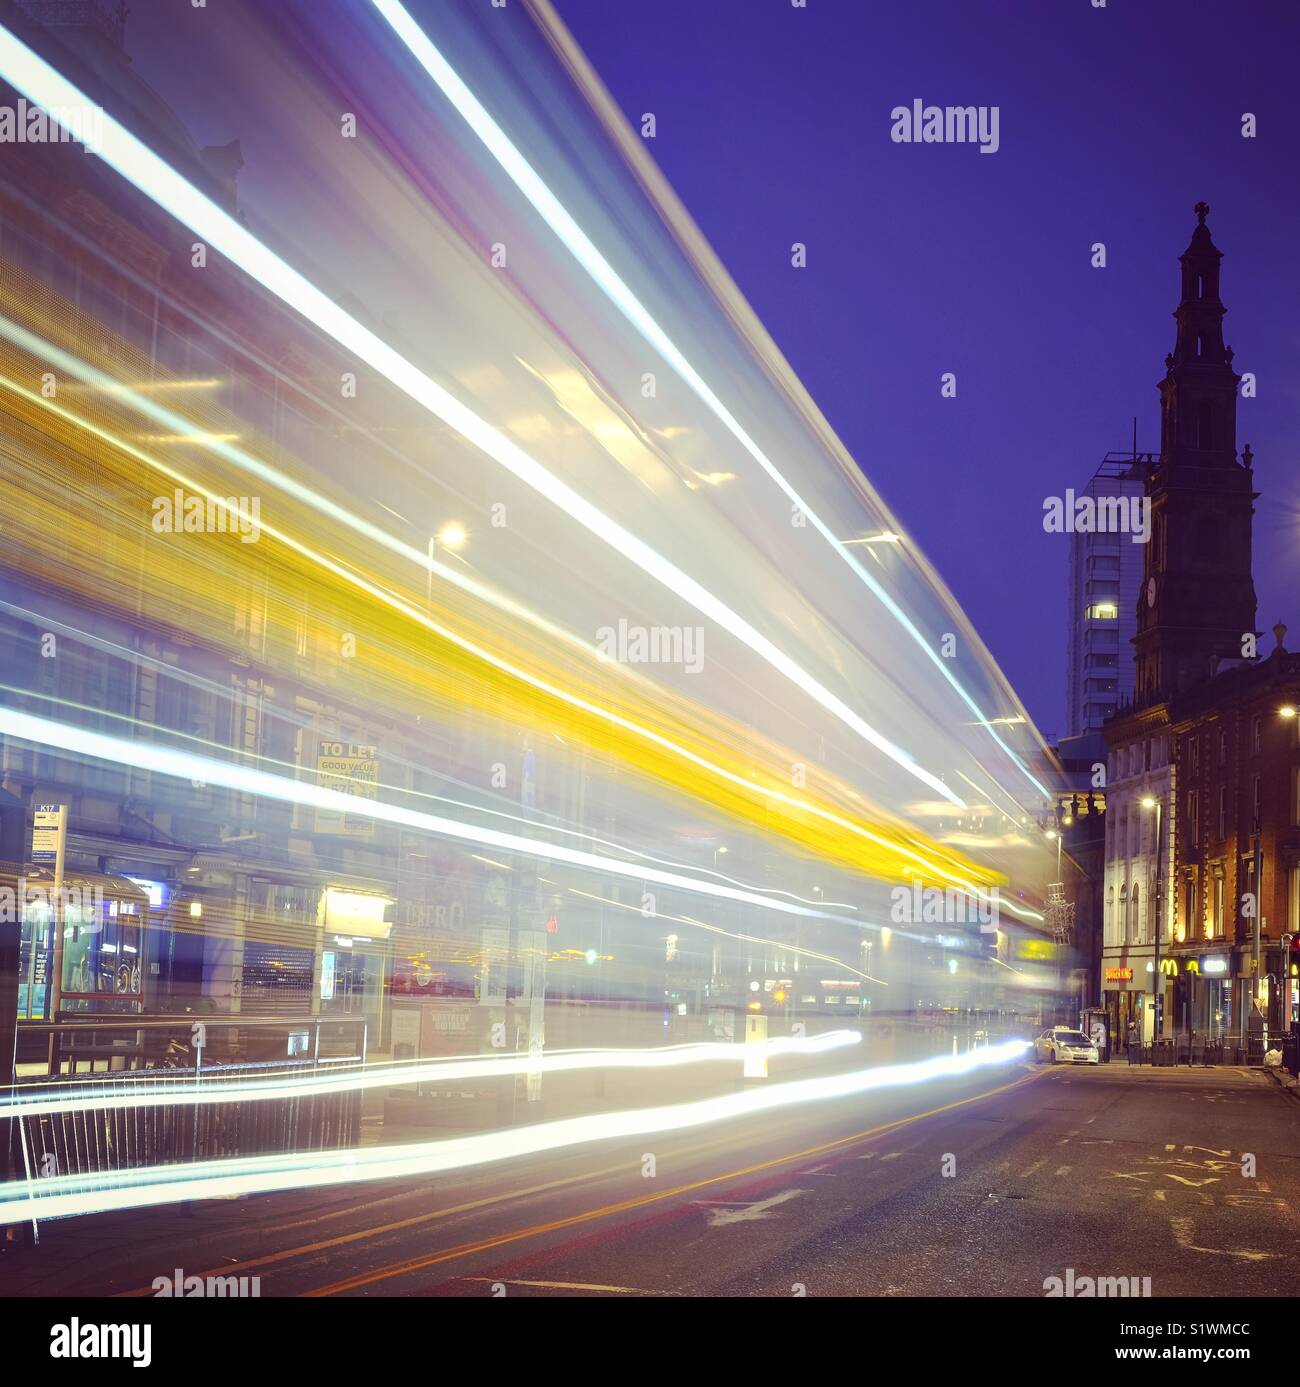 Light trails in Leeds City Centre, West Yorkshire, England. - Stock Image